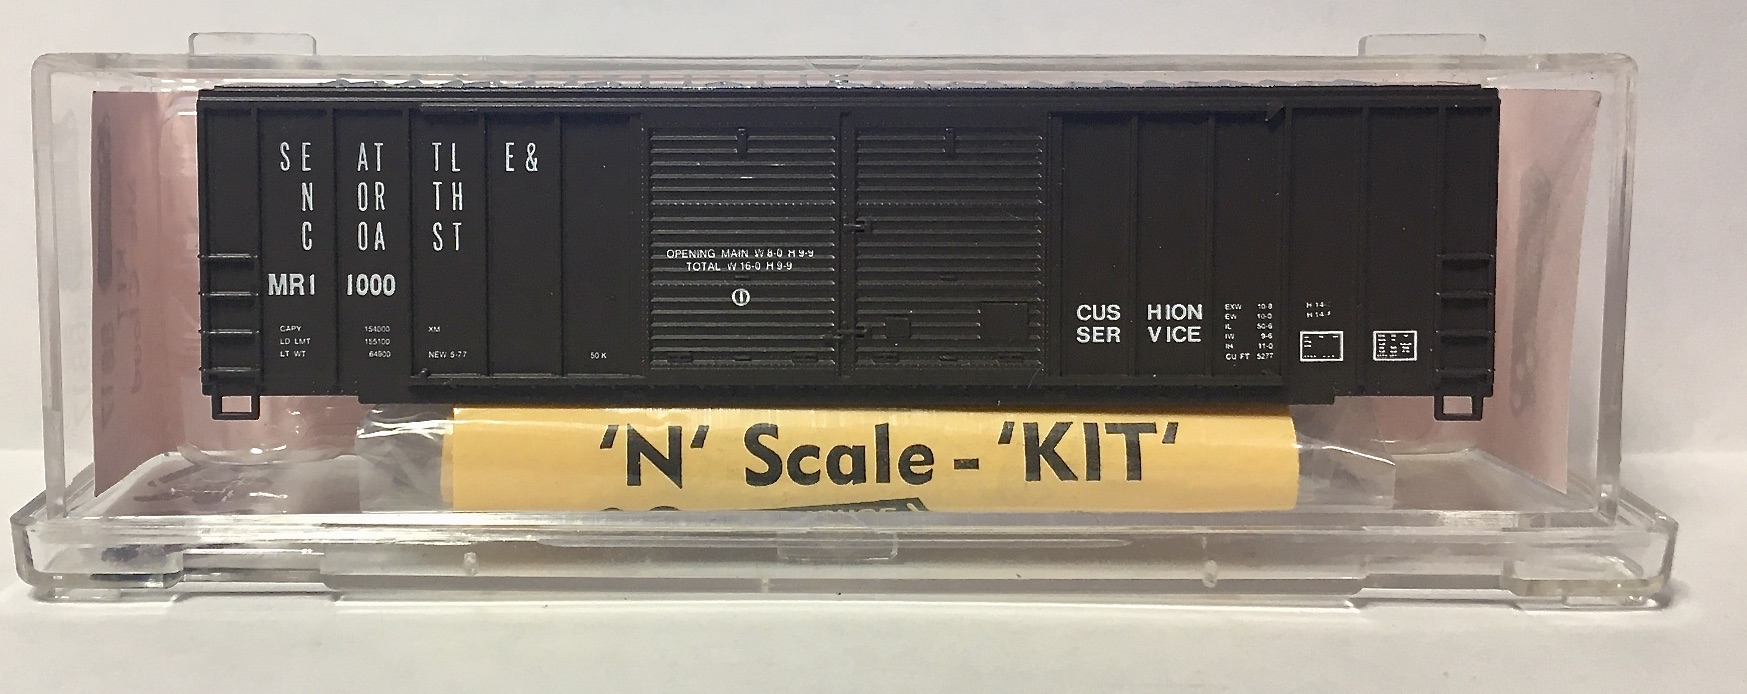 N Scale - Roundhouse - 8817 - Boxcar, 50 Foot, FMC, 5077 - McCloud River - 1000